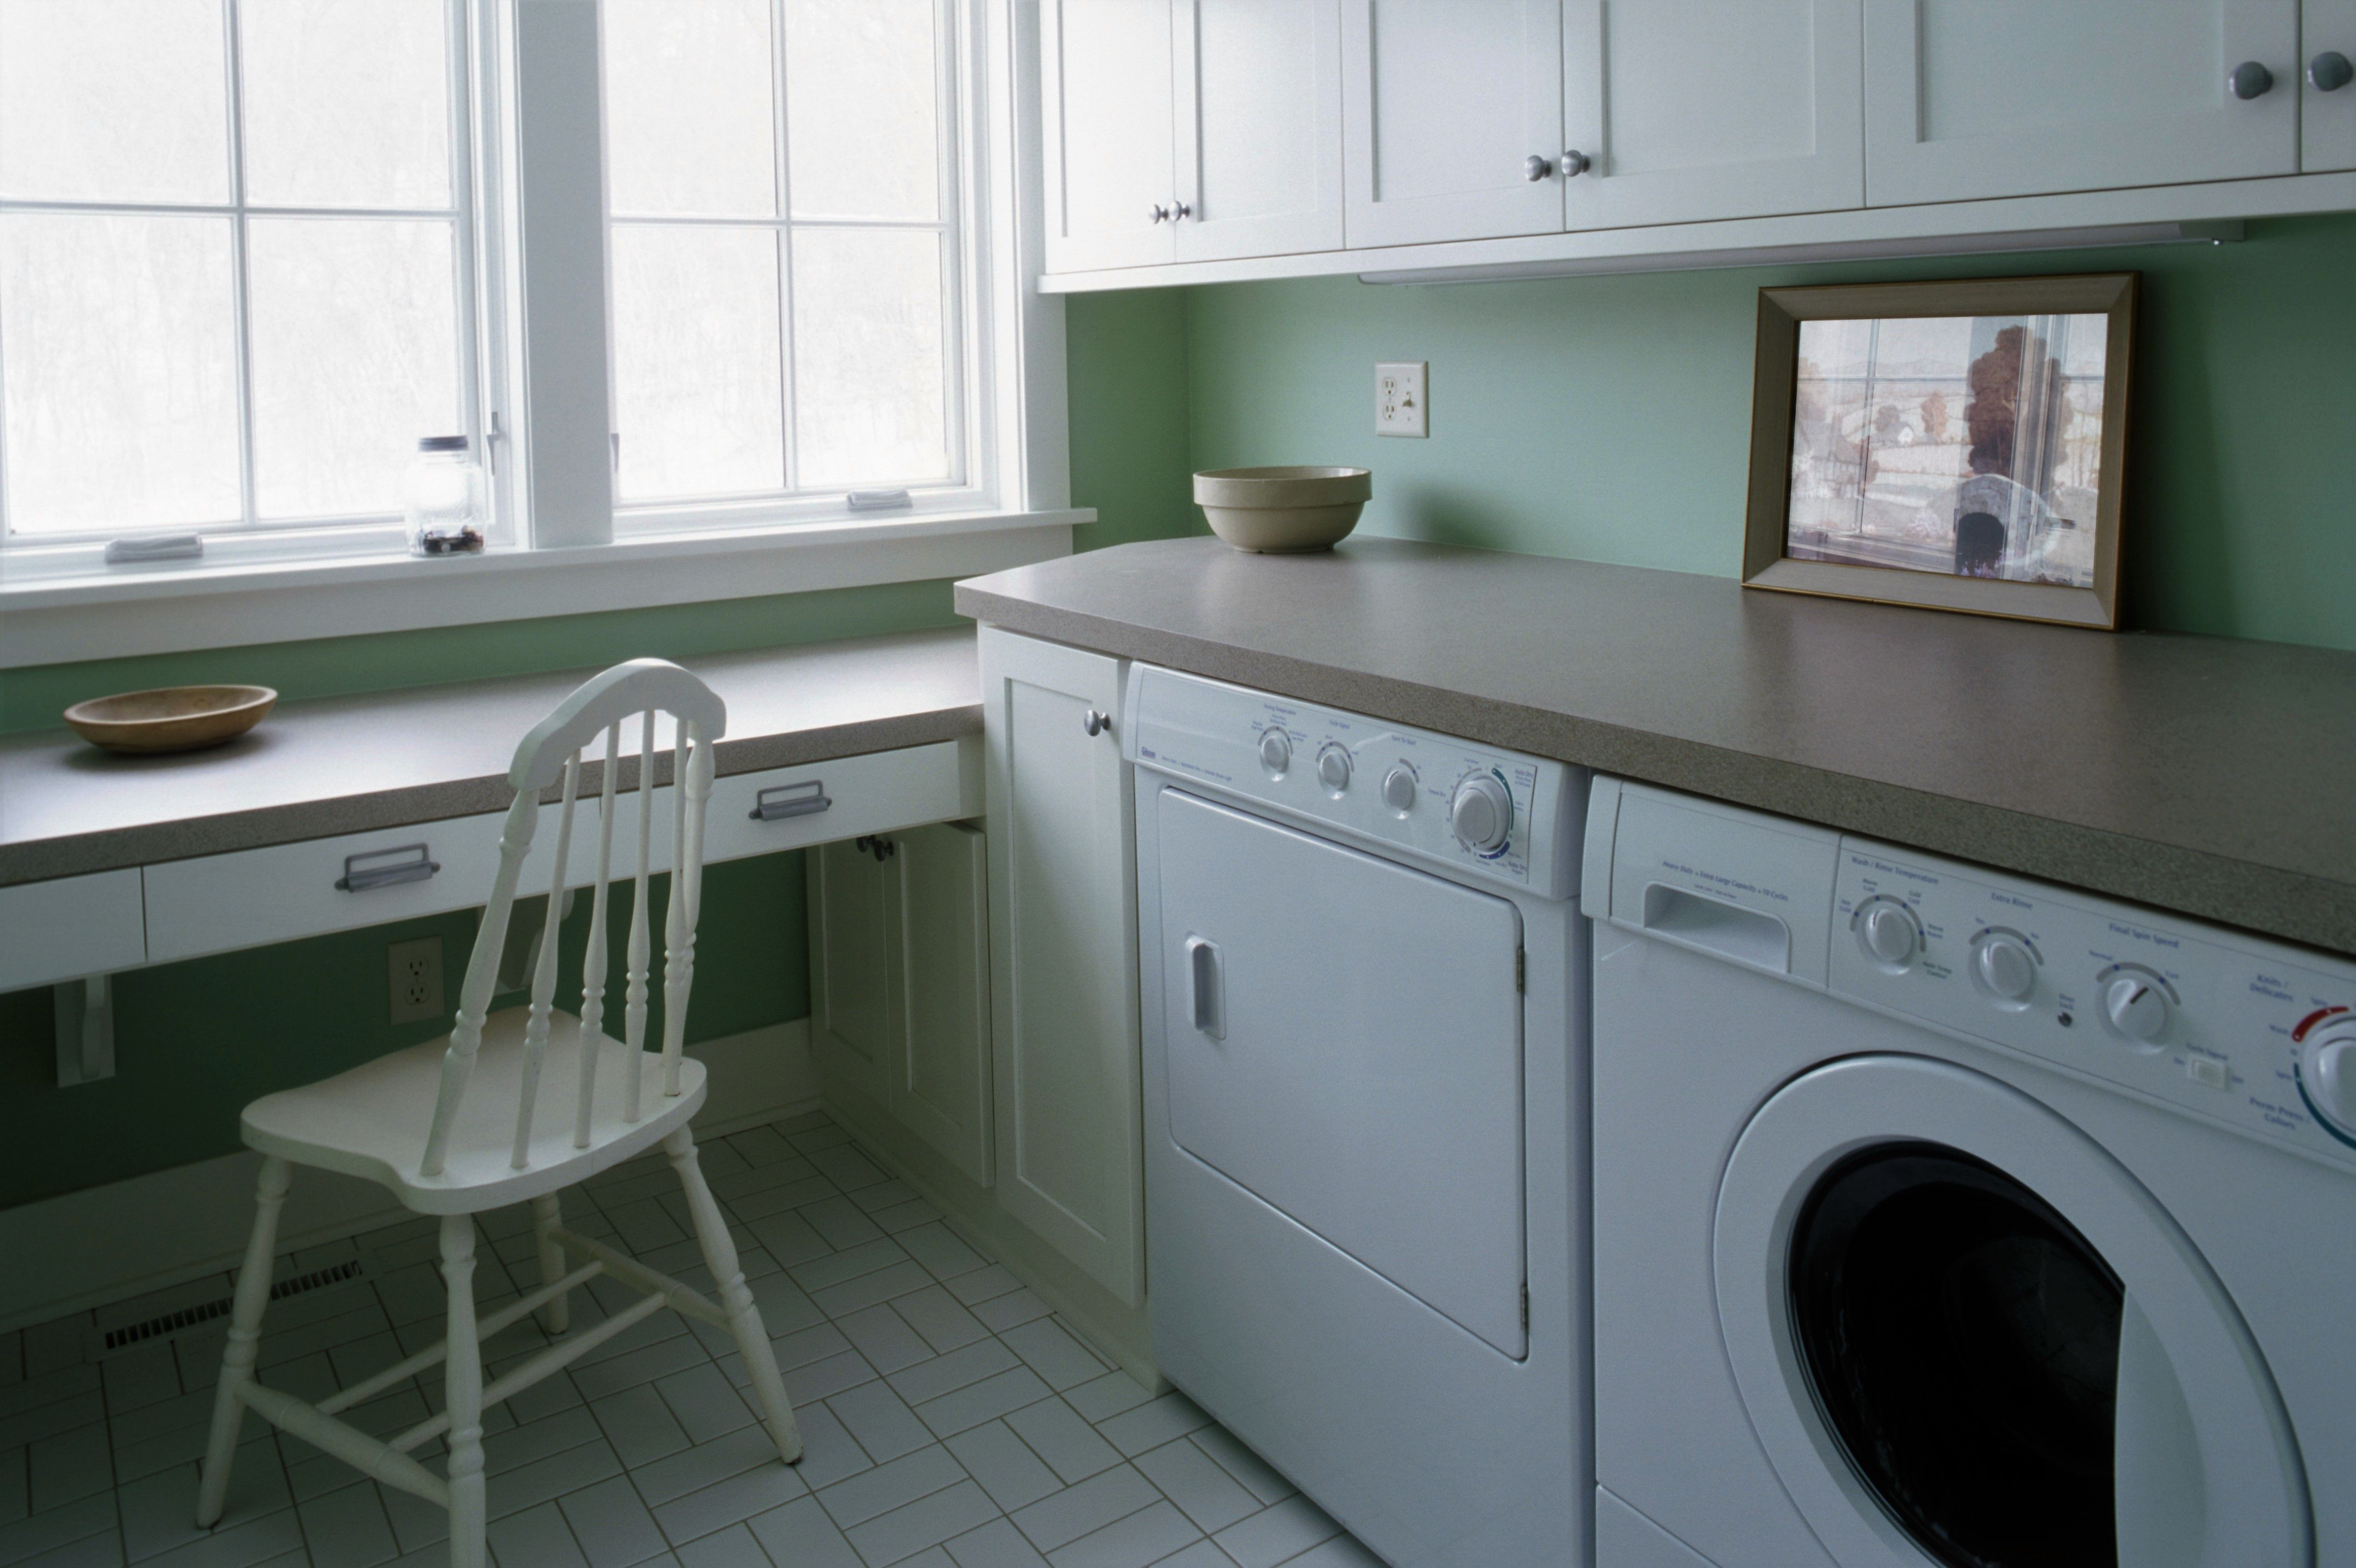 Work Station Laundry Room